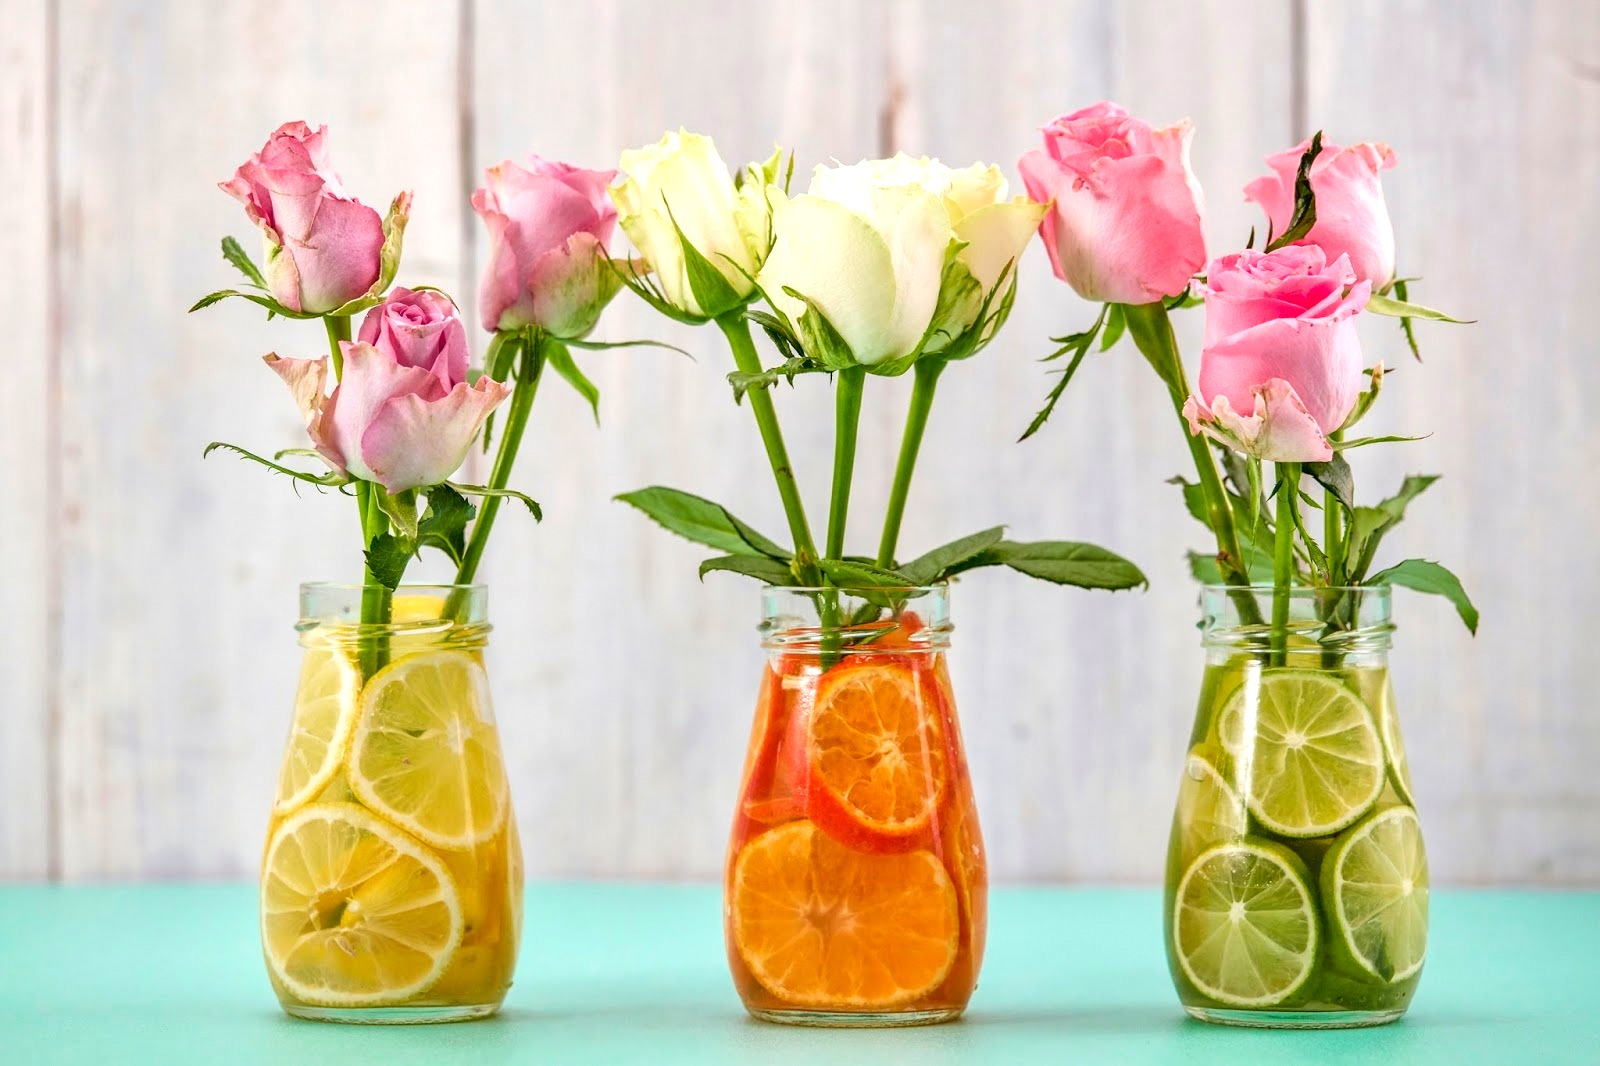 Repurposed jam jar ideas by Claire Justine, featured on Funky Junk's DIY Salvaged Junk Projects 509